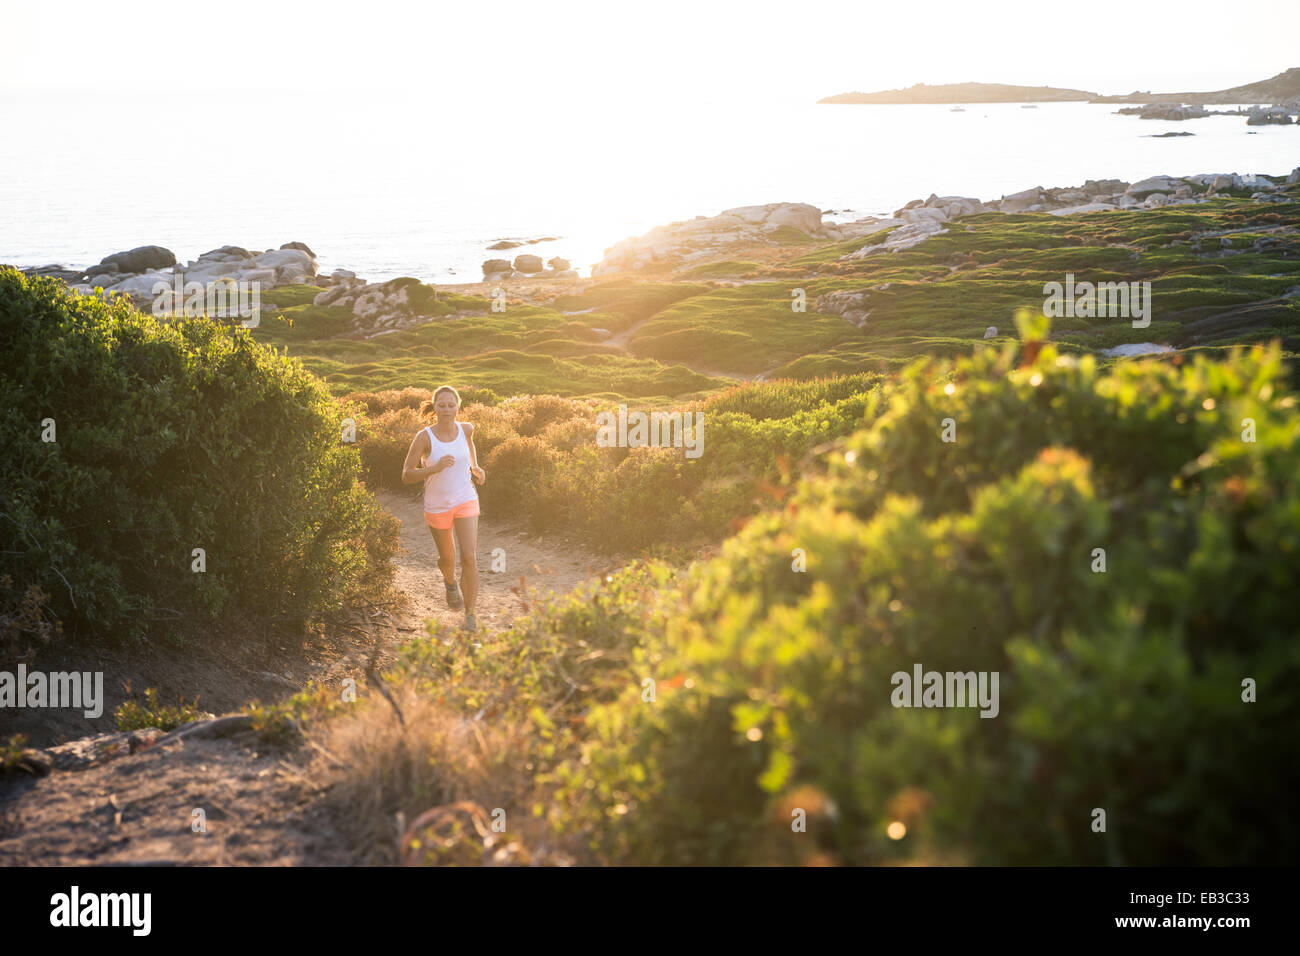 France, Corse, femme trail running at coast Photo Stock